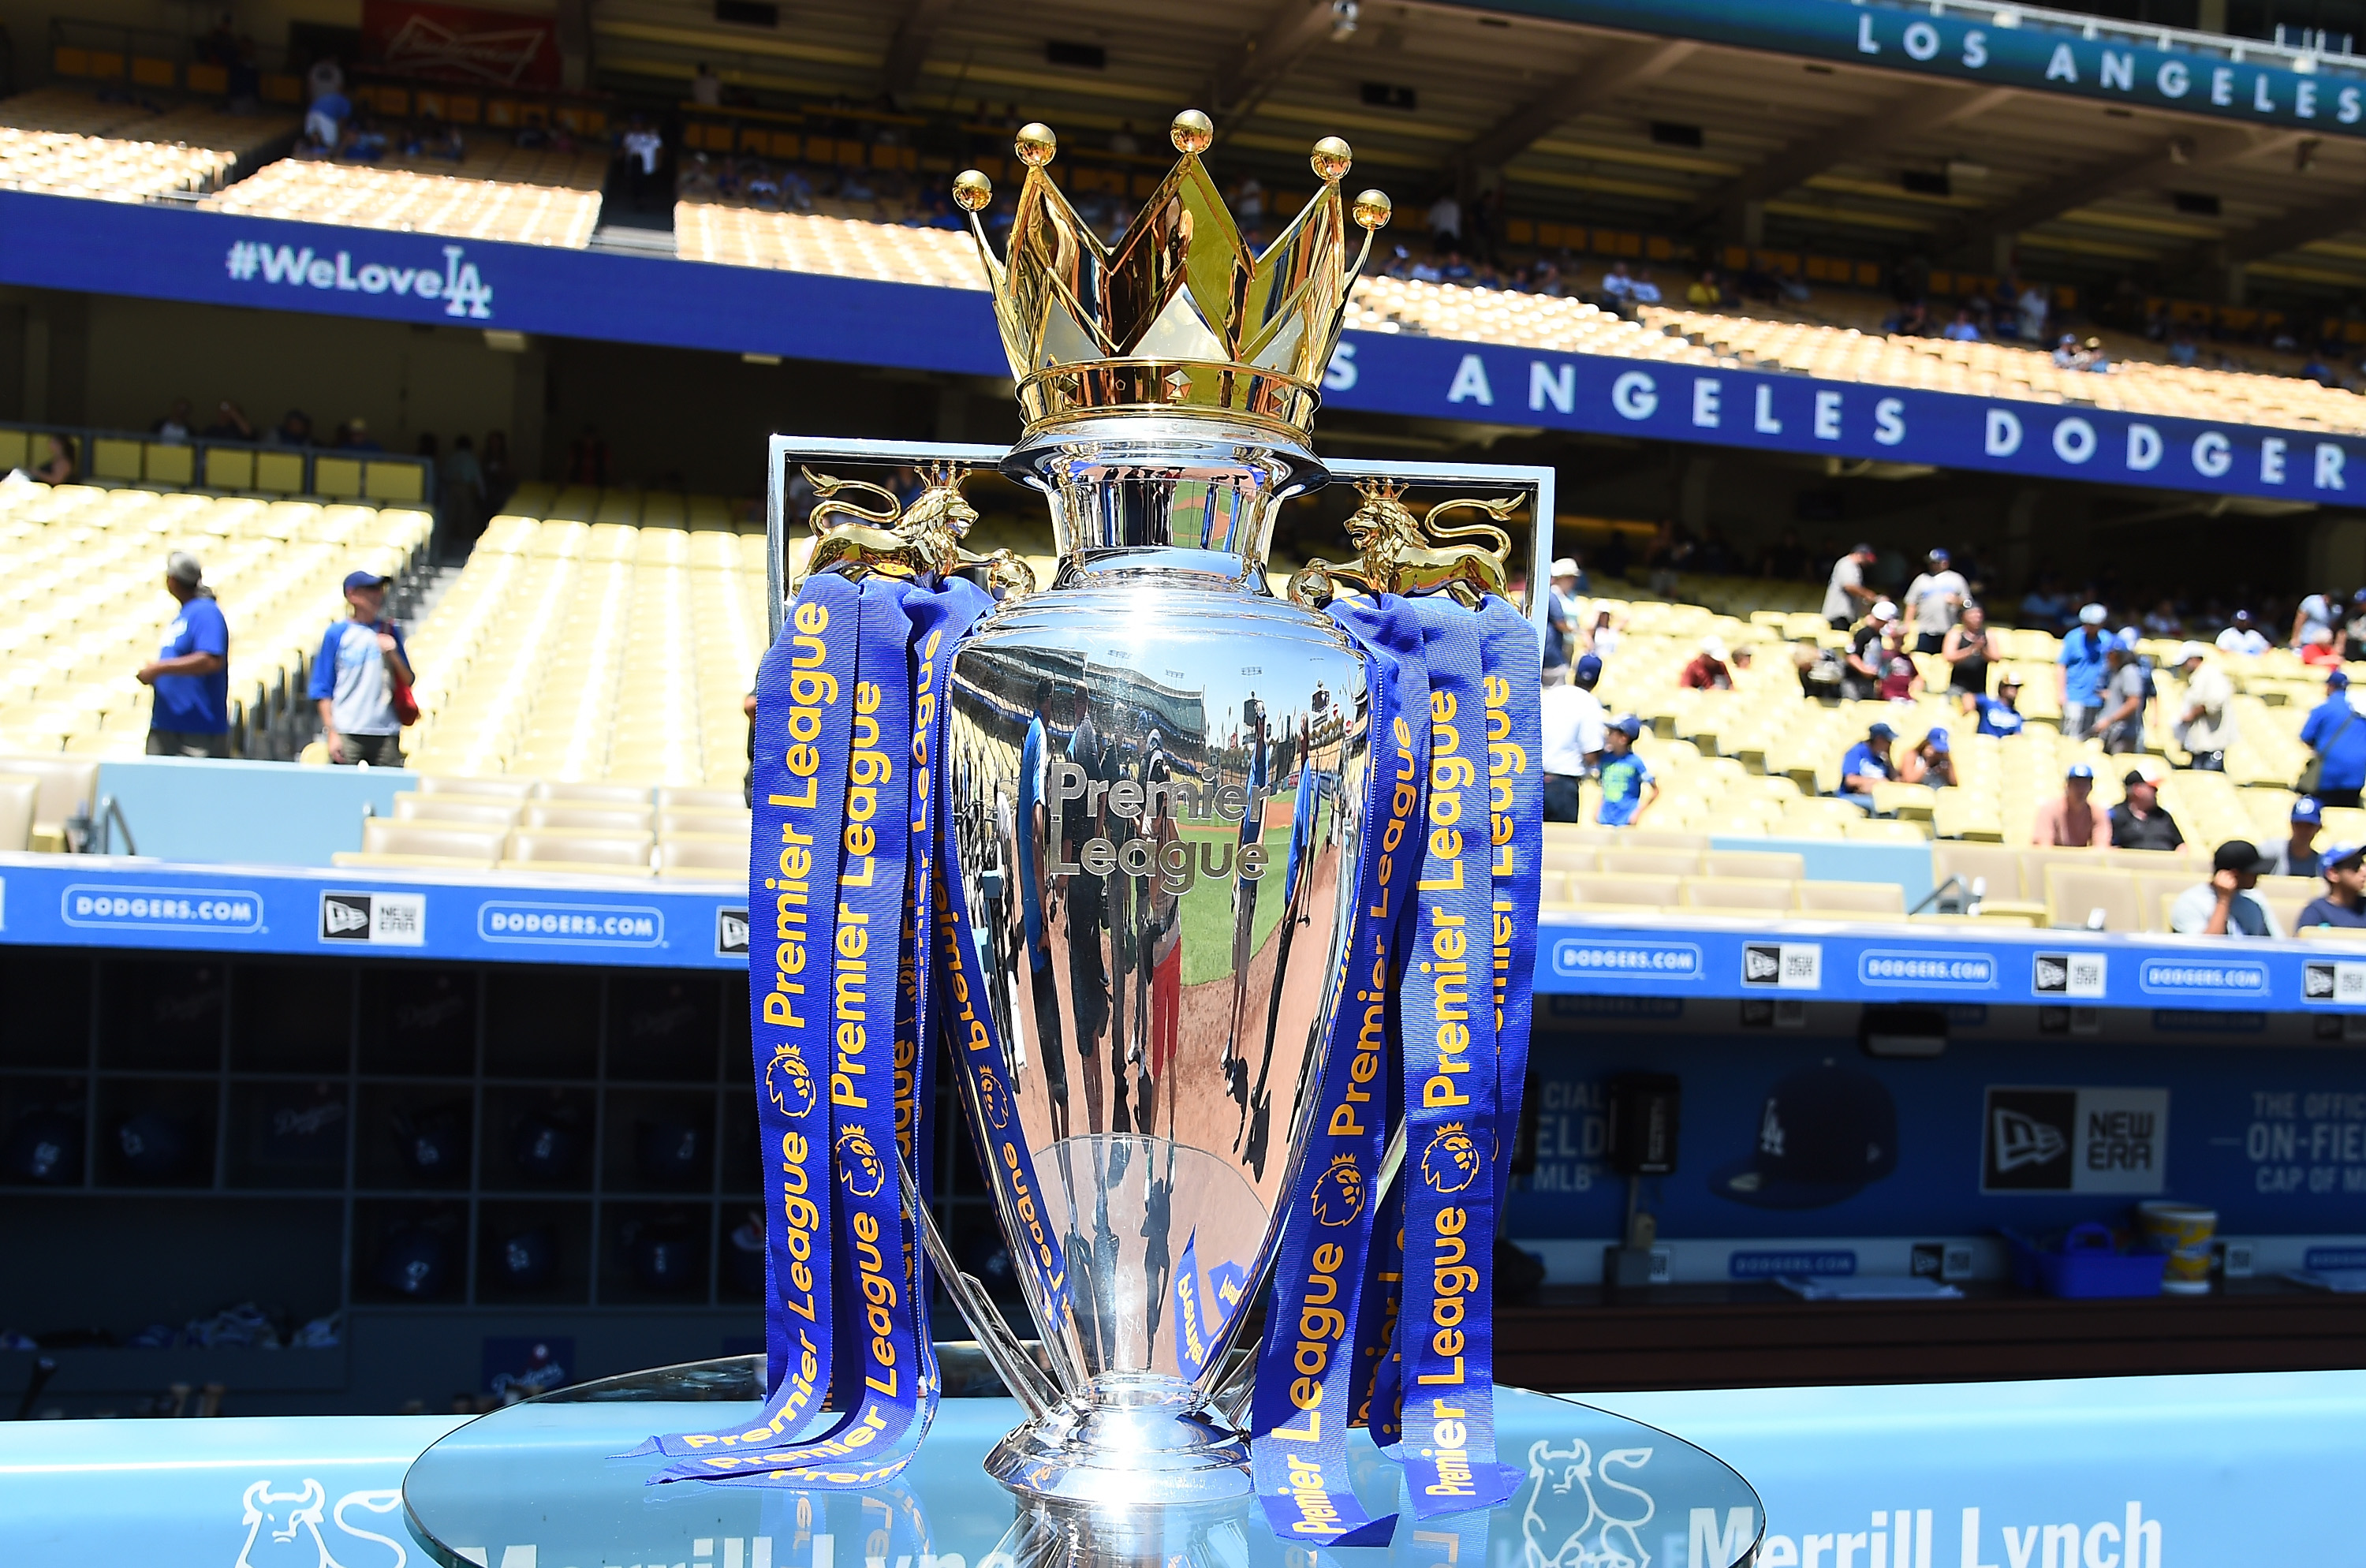 LOS ANGELES, CA - JULY 27:  The Premier League Championship trophy was on display before the game between the Los Angeles Dodgers and the Tampa Bay Rays at Dodger Stadium on July 27, 2016 in Los Angeles, California.  (Photo by Jayne Kamin-Oncea/Getty Images)